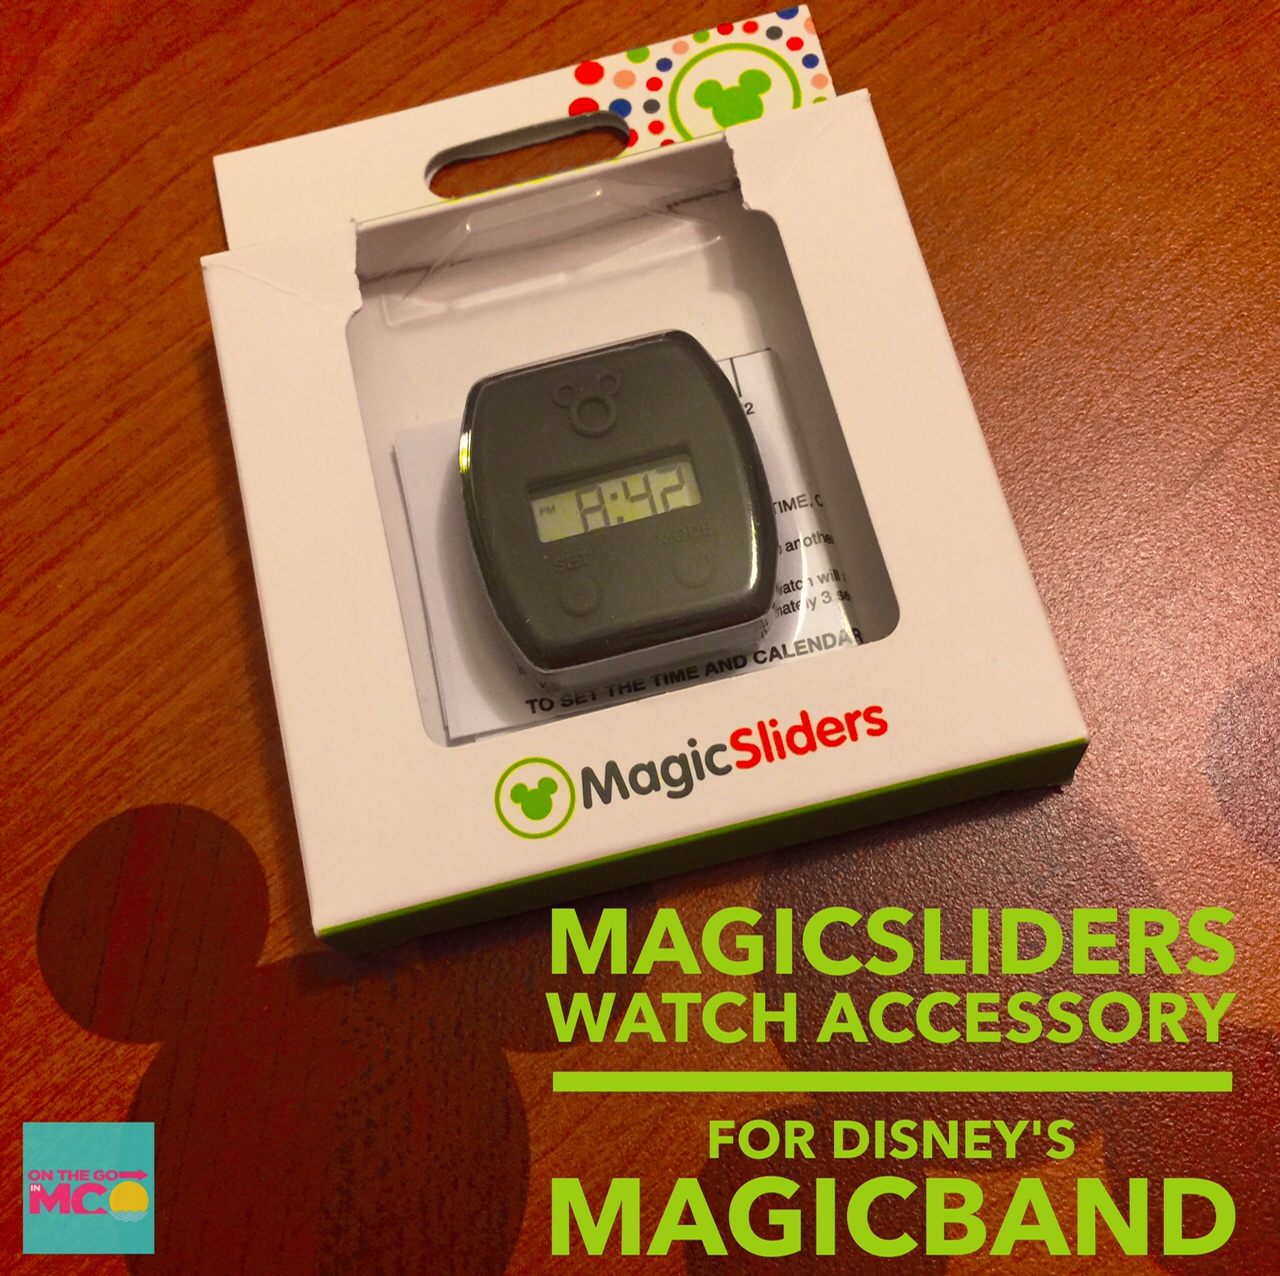 MagicSliders Watch MagicBand Accessory